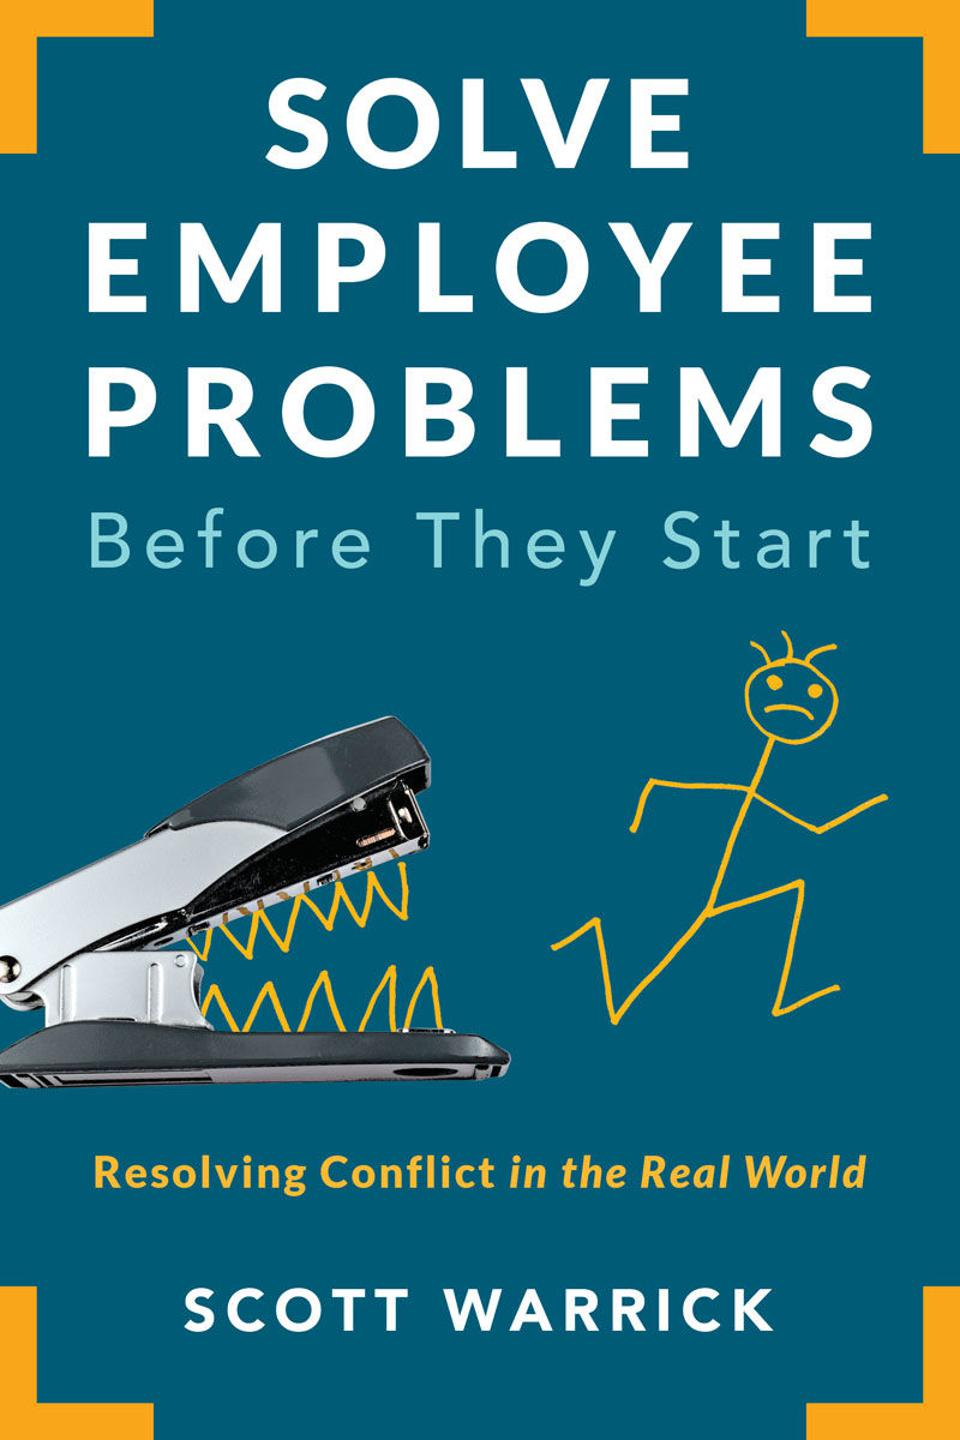 Solve Employee Problems Before They Start: Resolving Conflict in the Real World by Scott Warrick